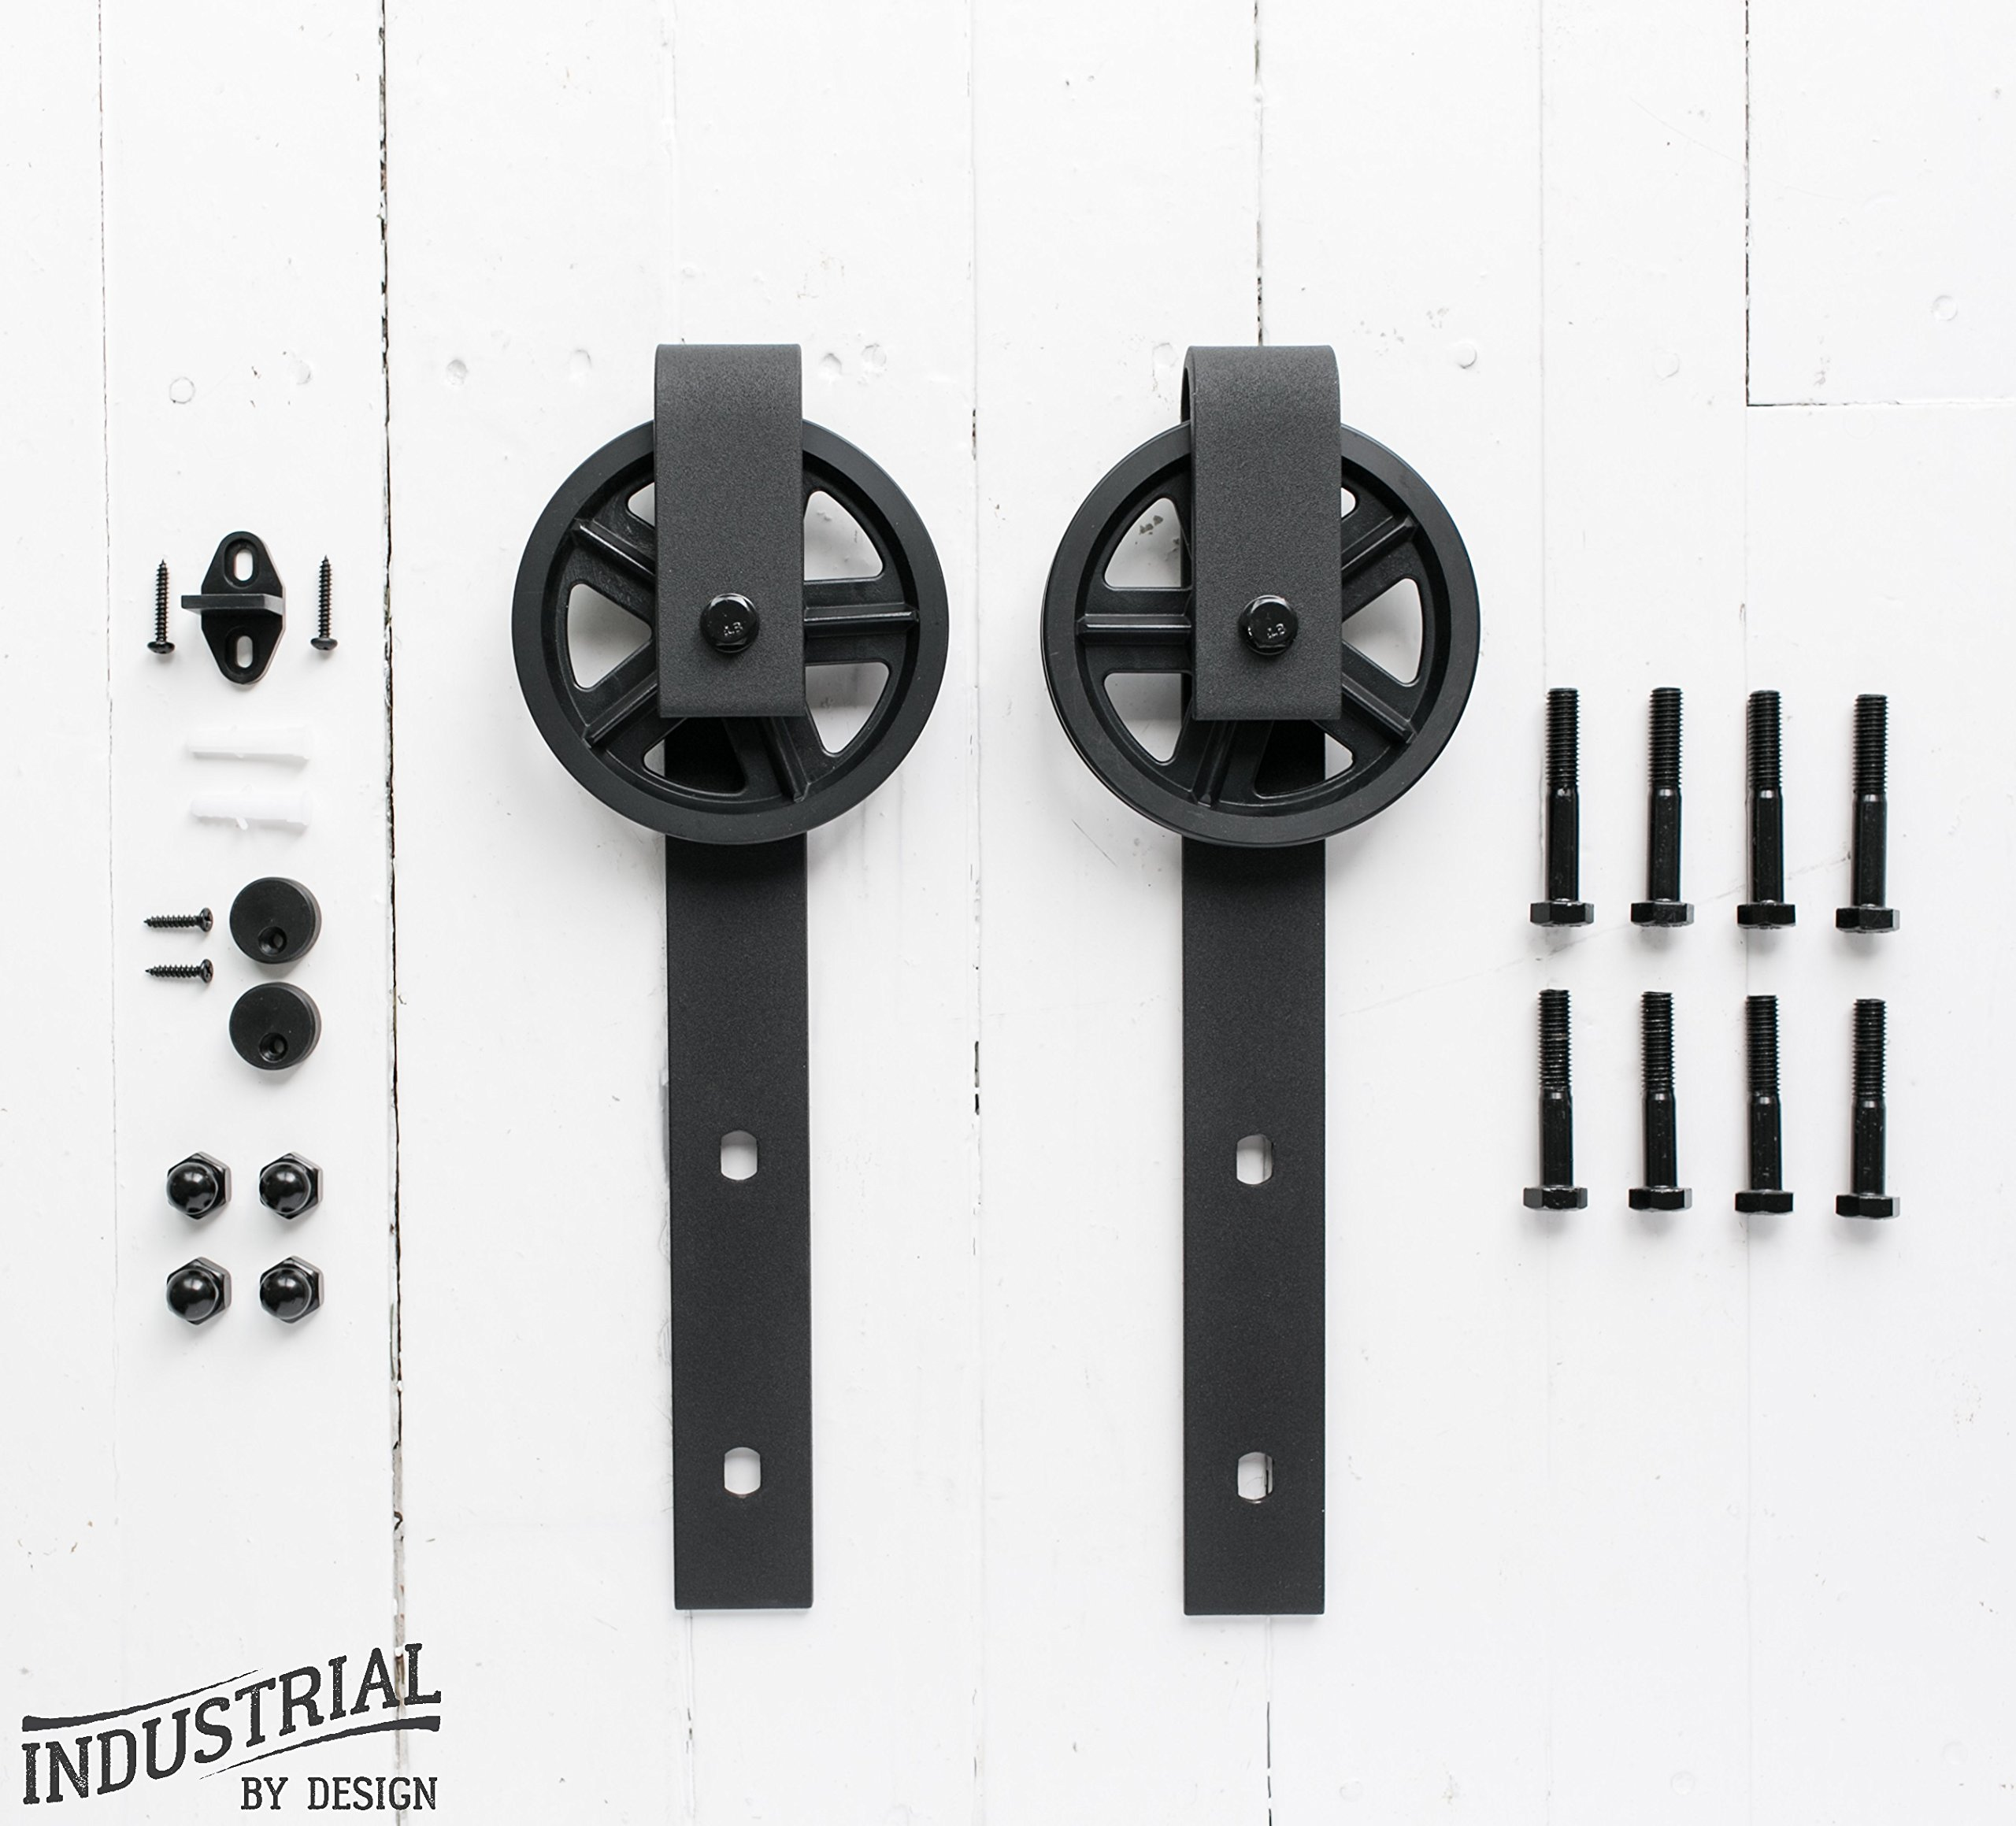 Big Wheel Sliding Barn Door Hangers (Black, Pair) ▫ Ultra Quiet, Successfully Tested Beyond 100,000 Rolls ▫ Industrial Strength ▫ Extra Hangers Only, No Rail